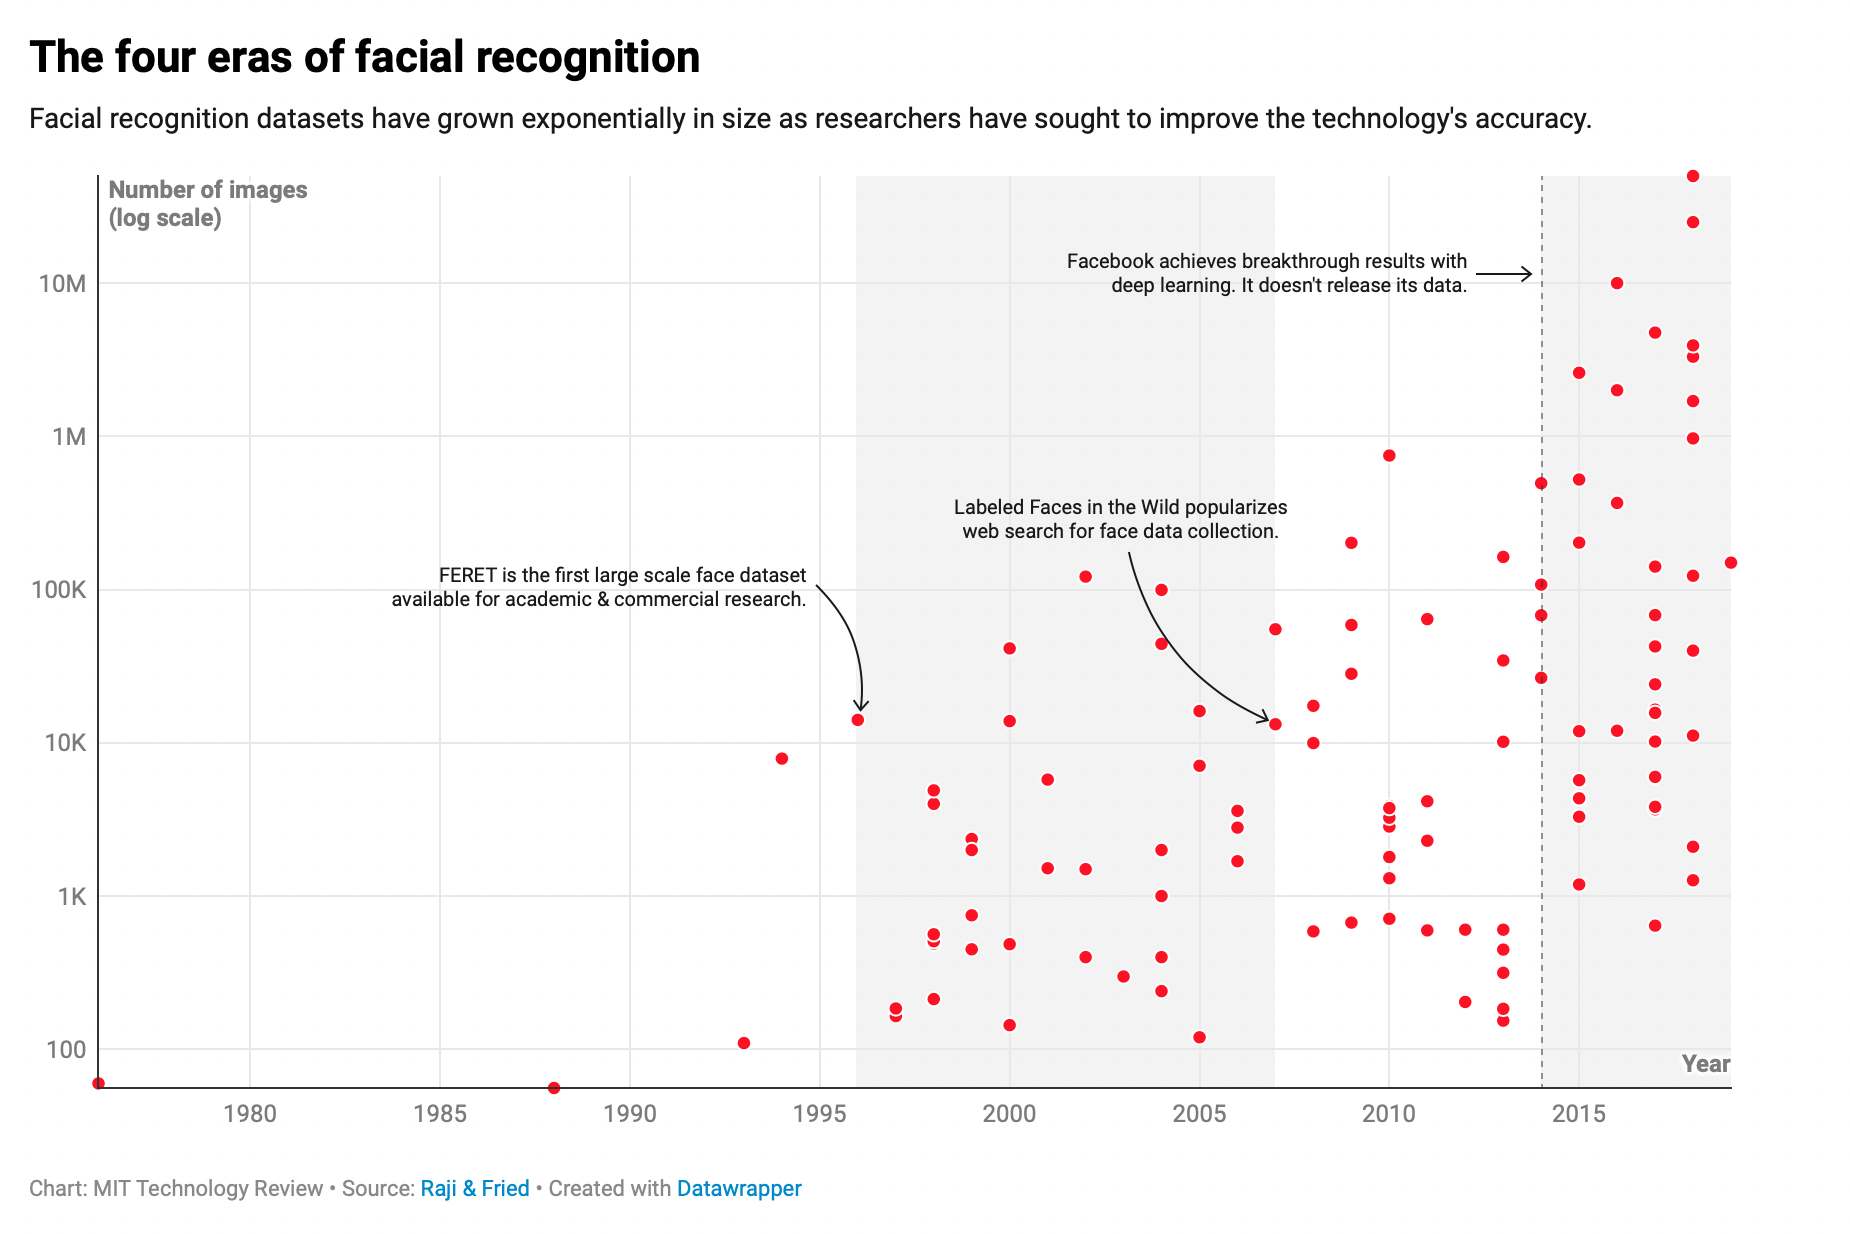 Four eras of Facial Recognition